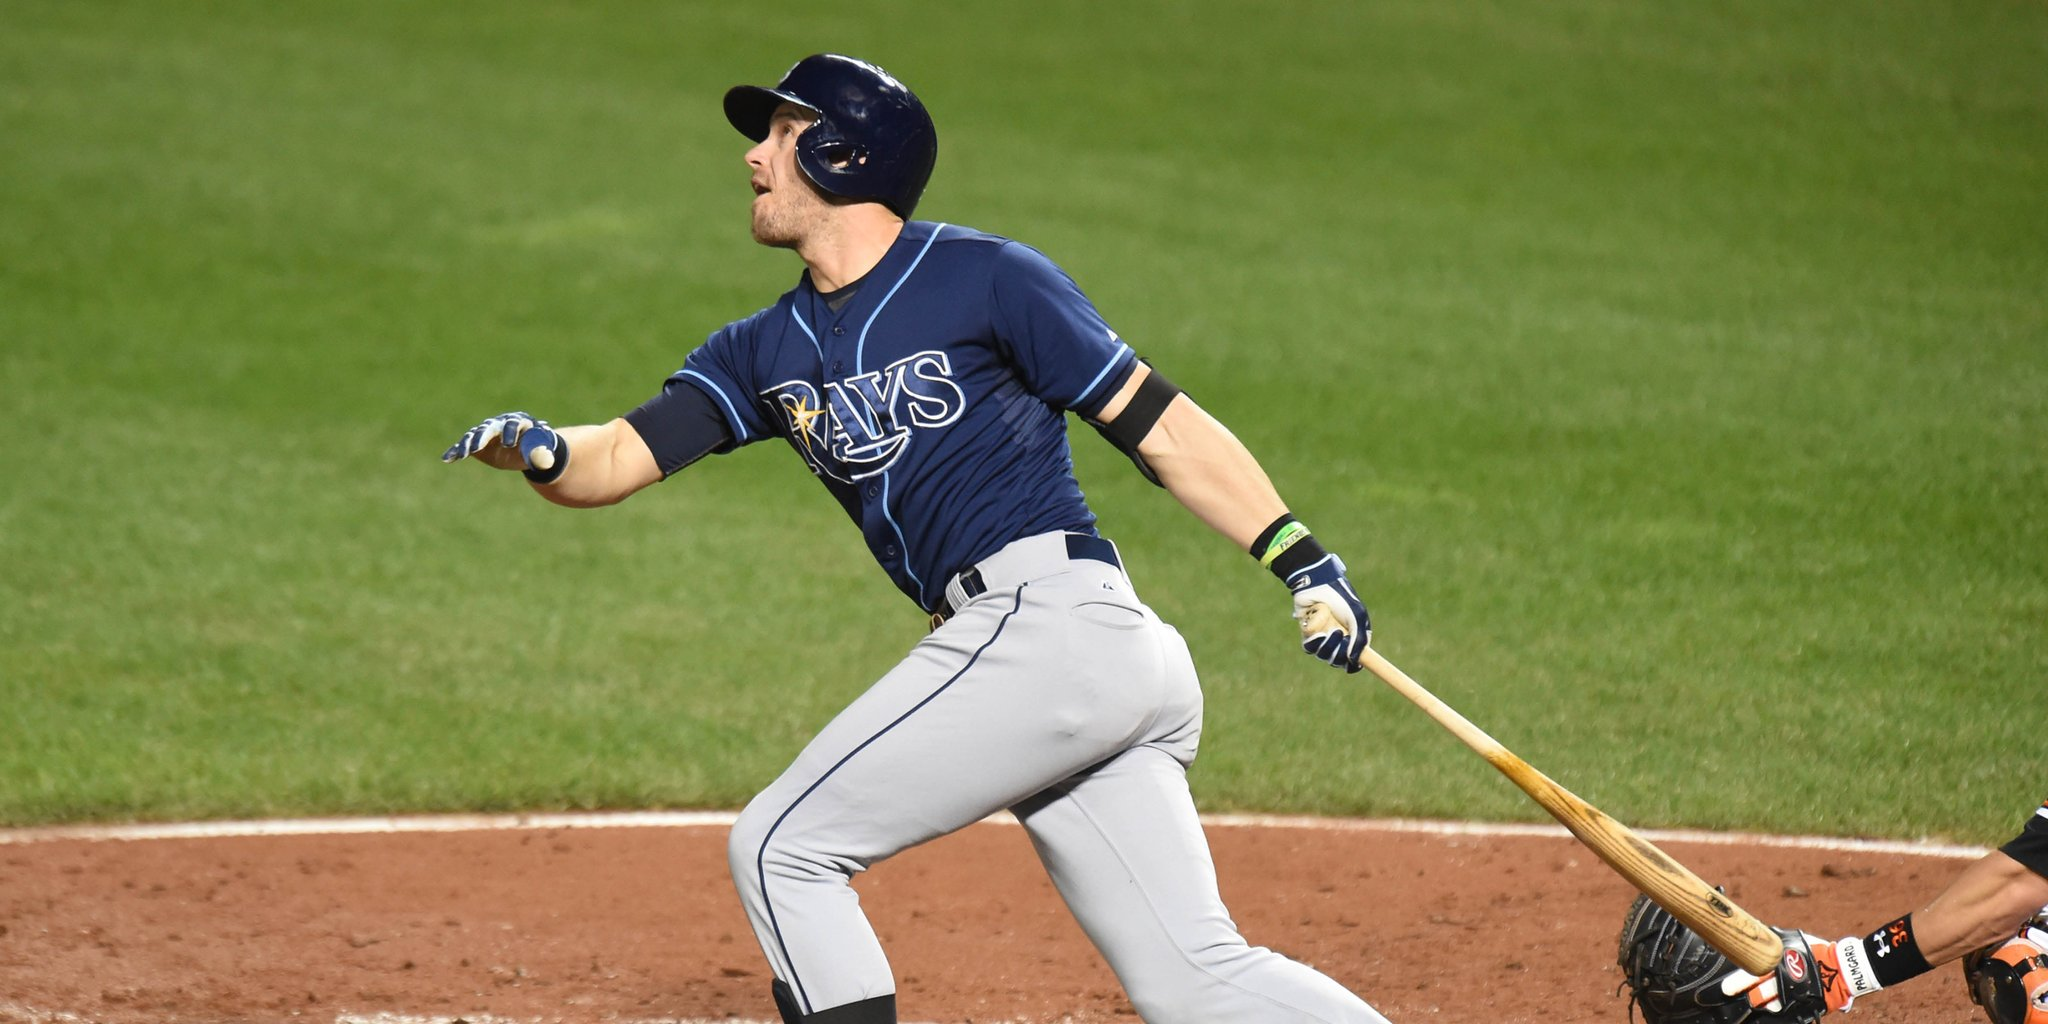 Evan Longoria has gone yard in three consecutive games. He'll try to make it four this afternoon. (Photo Credit: Tampa Bay Rays)